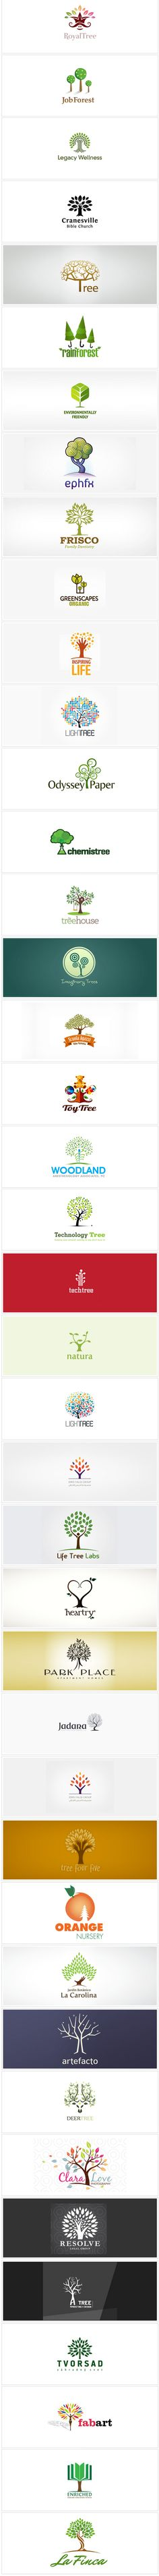 40 Creative Tree Logo Design examples for your inspiration Logo Design Inspiration, Icon Design, Logo Garden, Library Logo, Logo Design Examples, Tree Logos, Professional Logo Design, Photoshop, Grafik Design